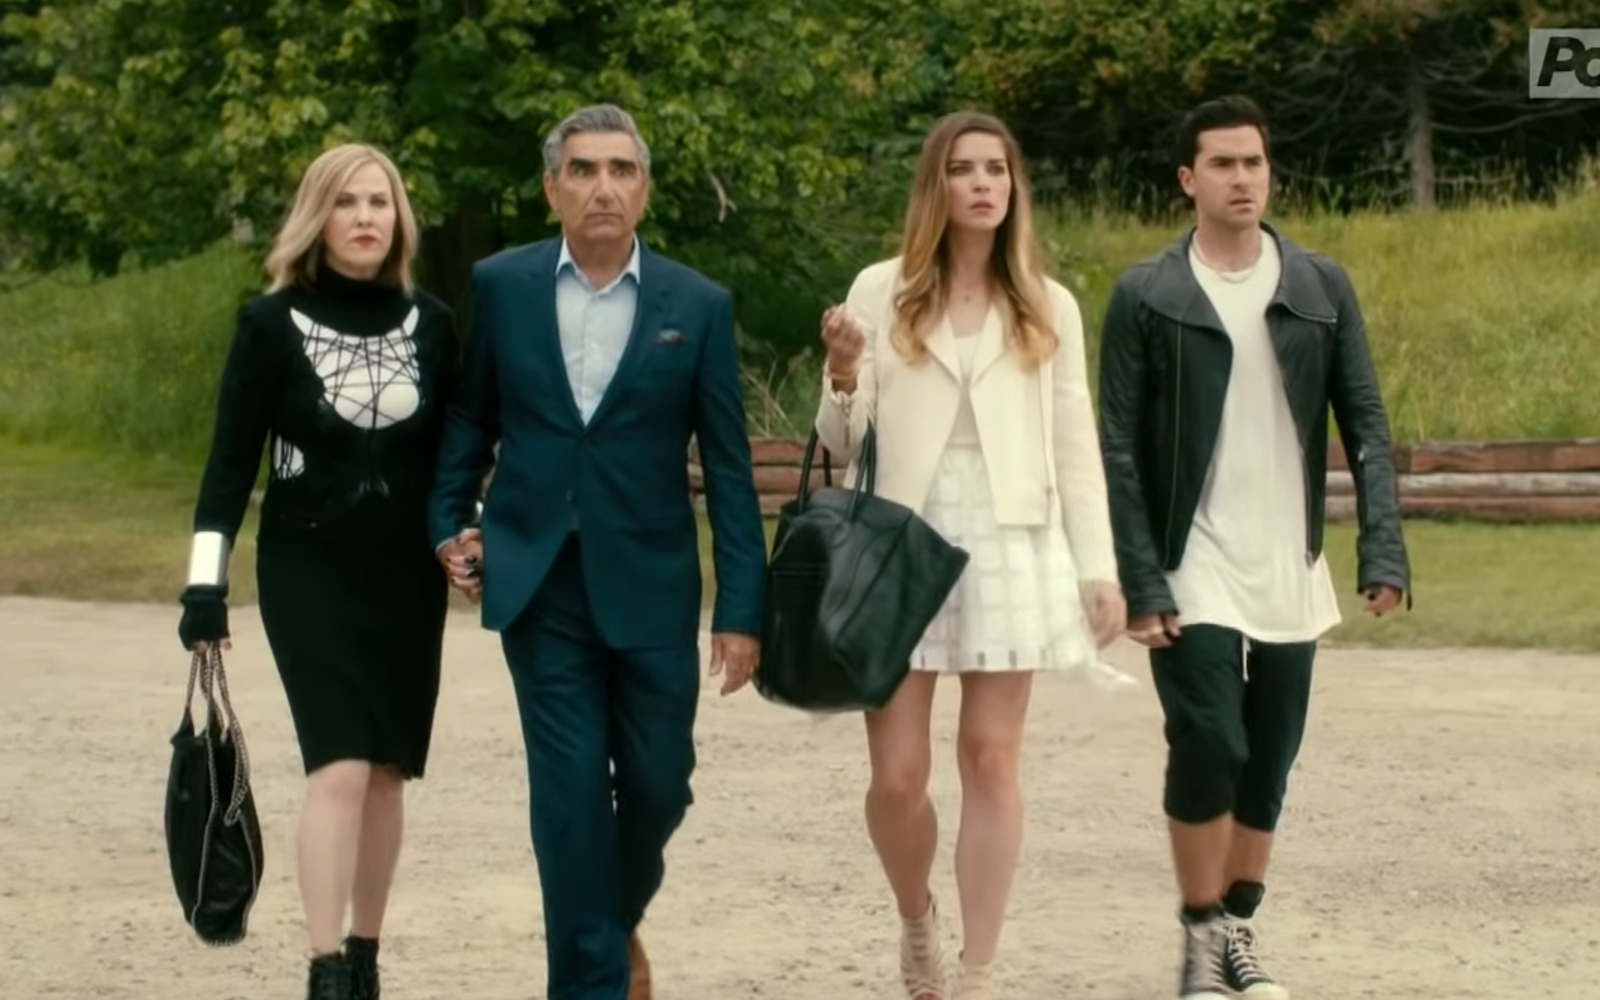 'Schitt's Creek' scores several Golden Globe nominations, including best comedy